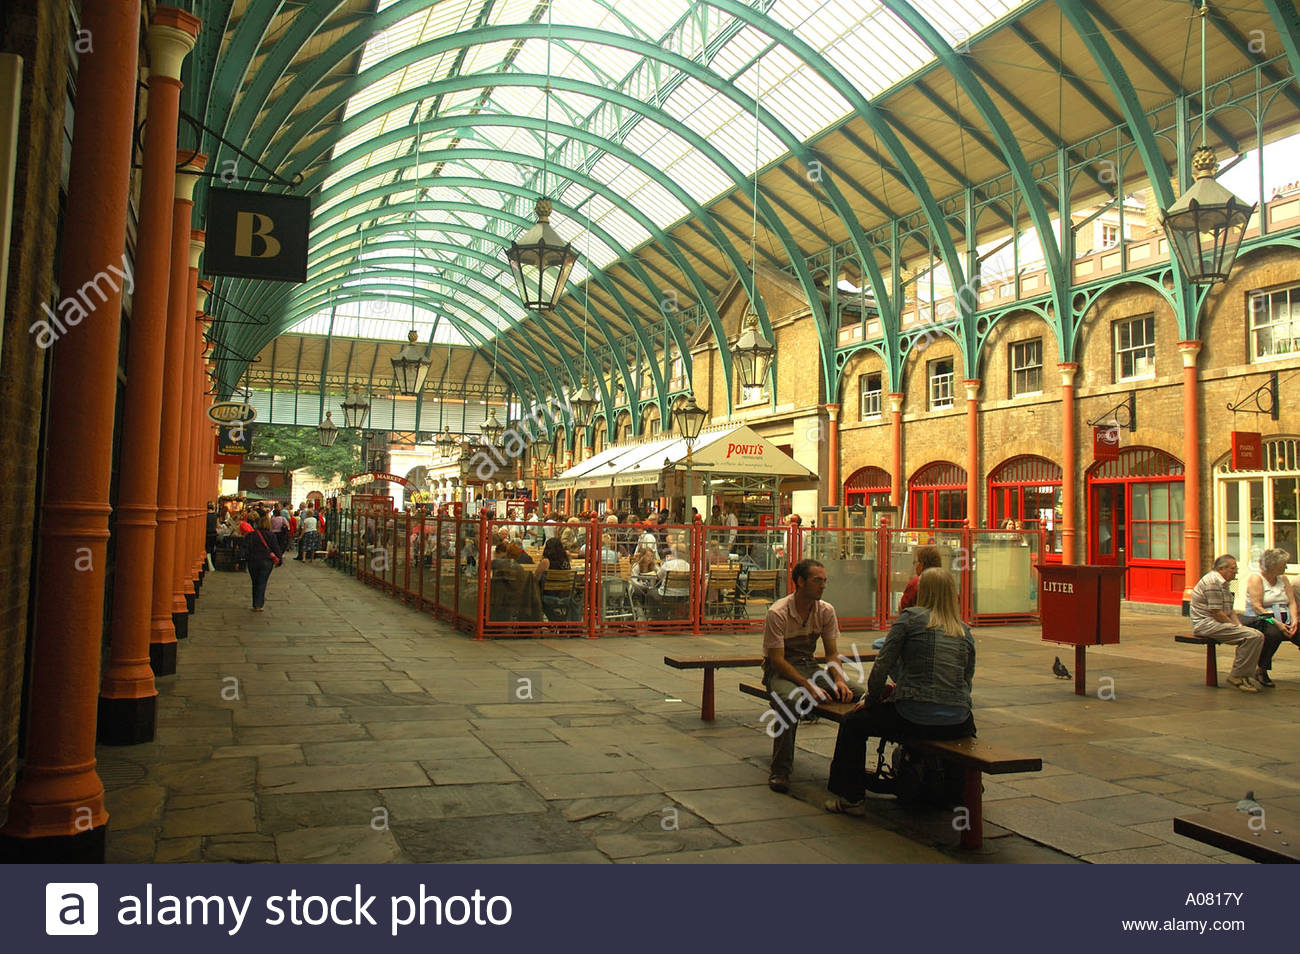 Covent Garden, Undercover Market Stock Photo: 9910190 - Alamy